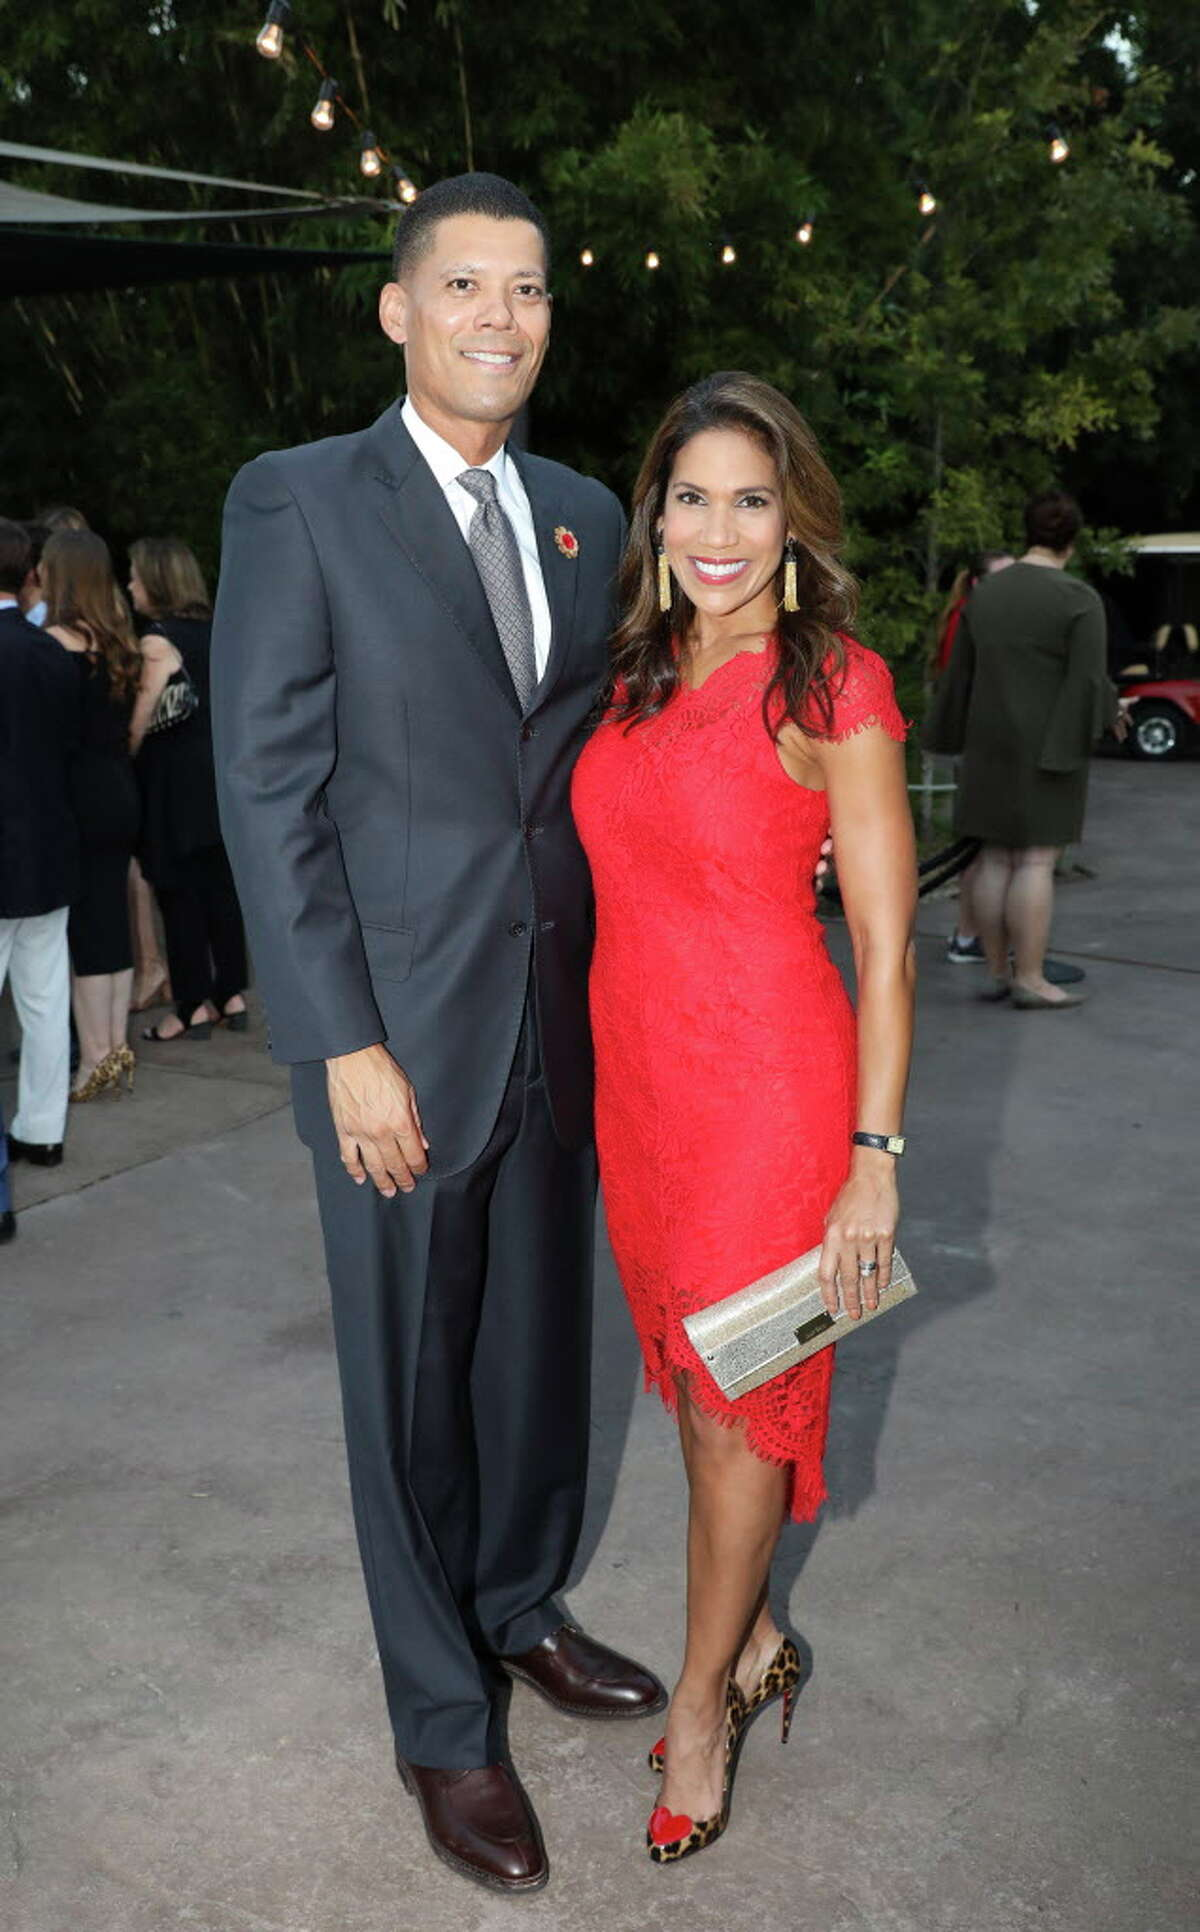 KPRC anchor Rachel McNeill, also the emcee of the night, and husband Dr. Wayne Franklin pose for a photo at Houston Zoo Gala Thursday, Oct. 12, 2017, in Houston.